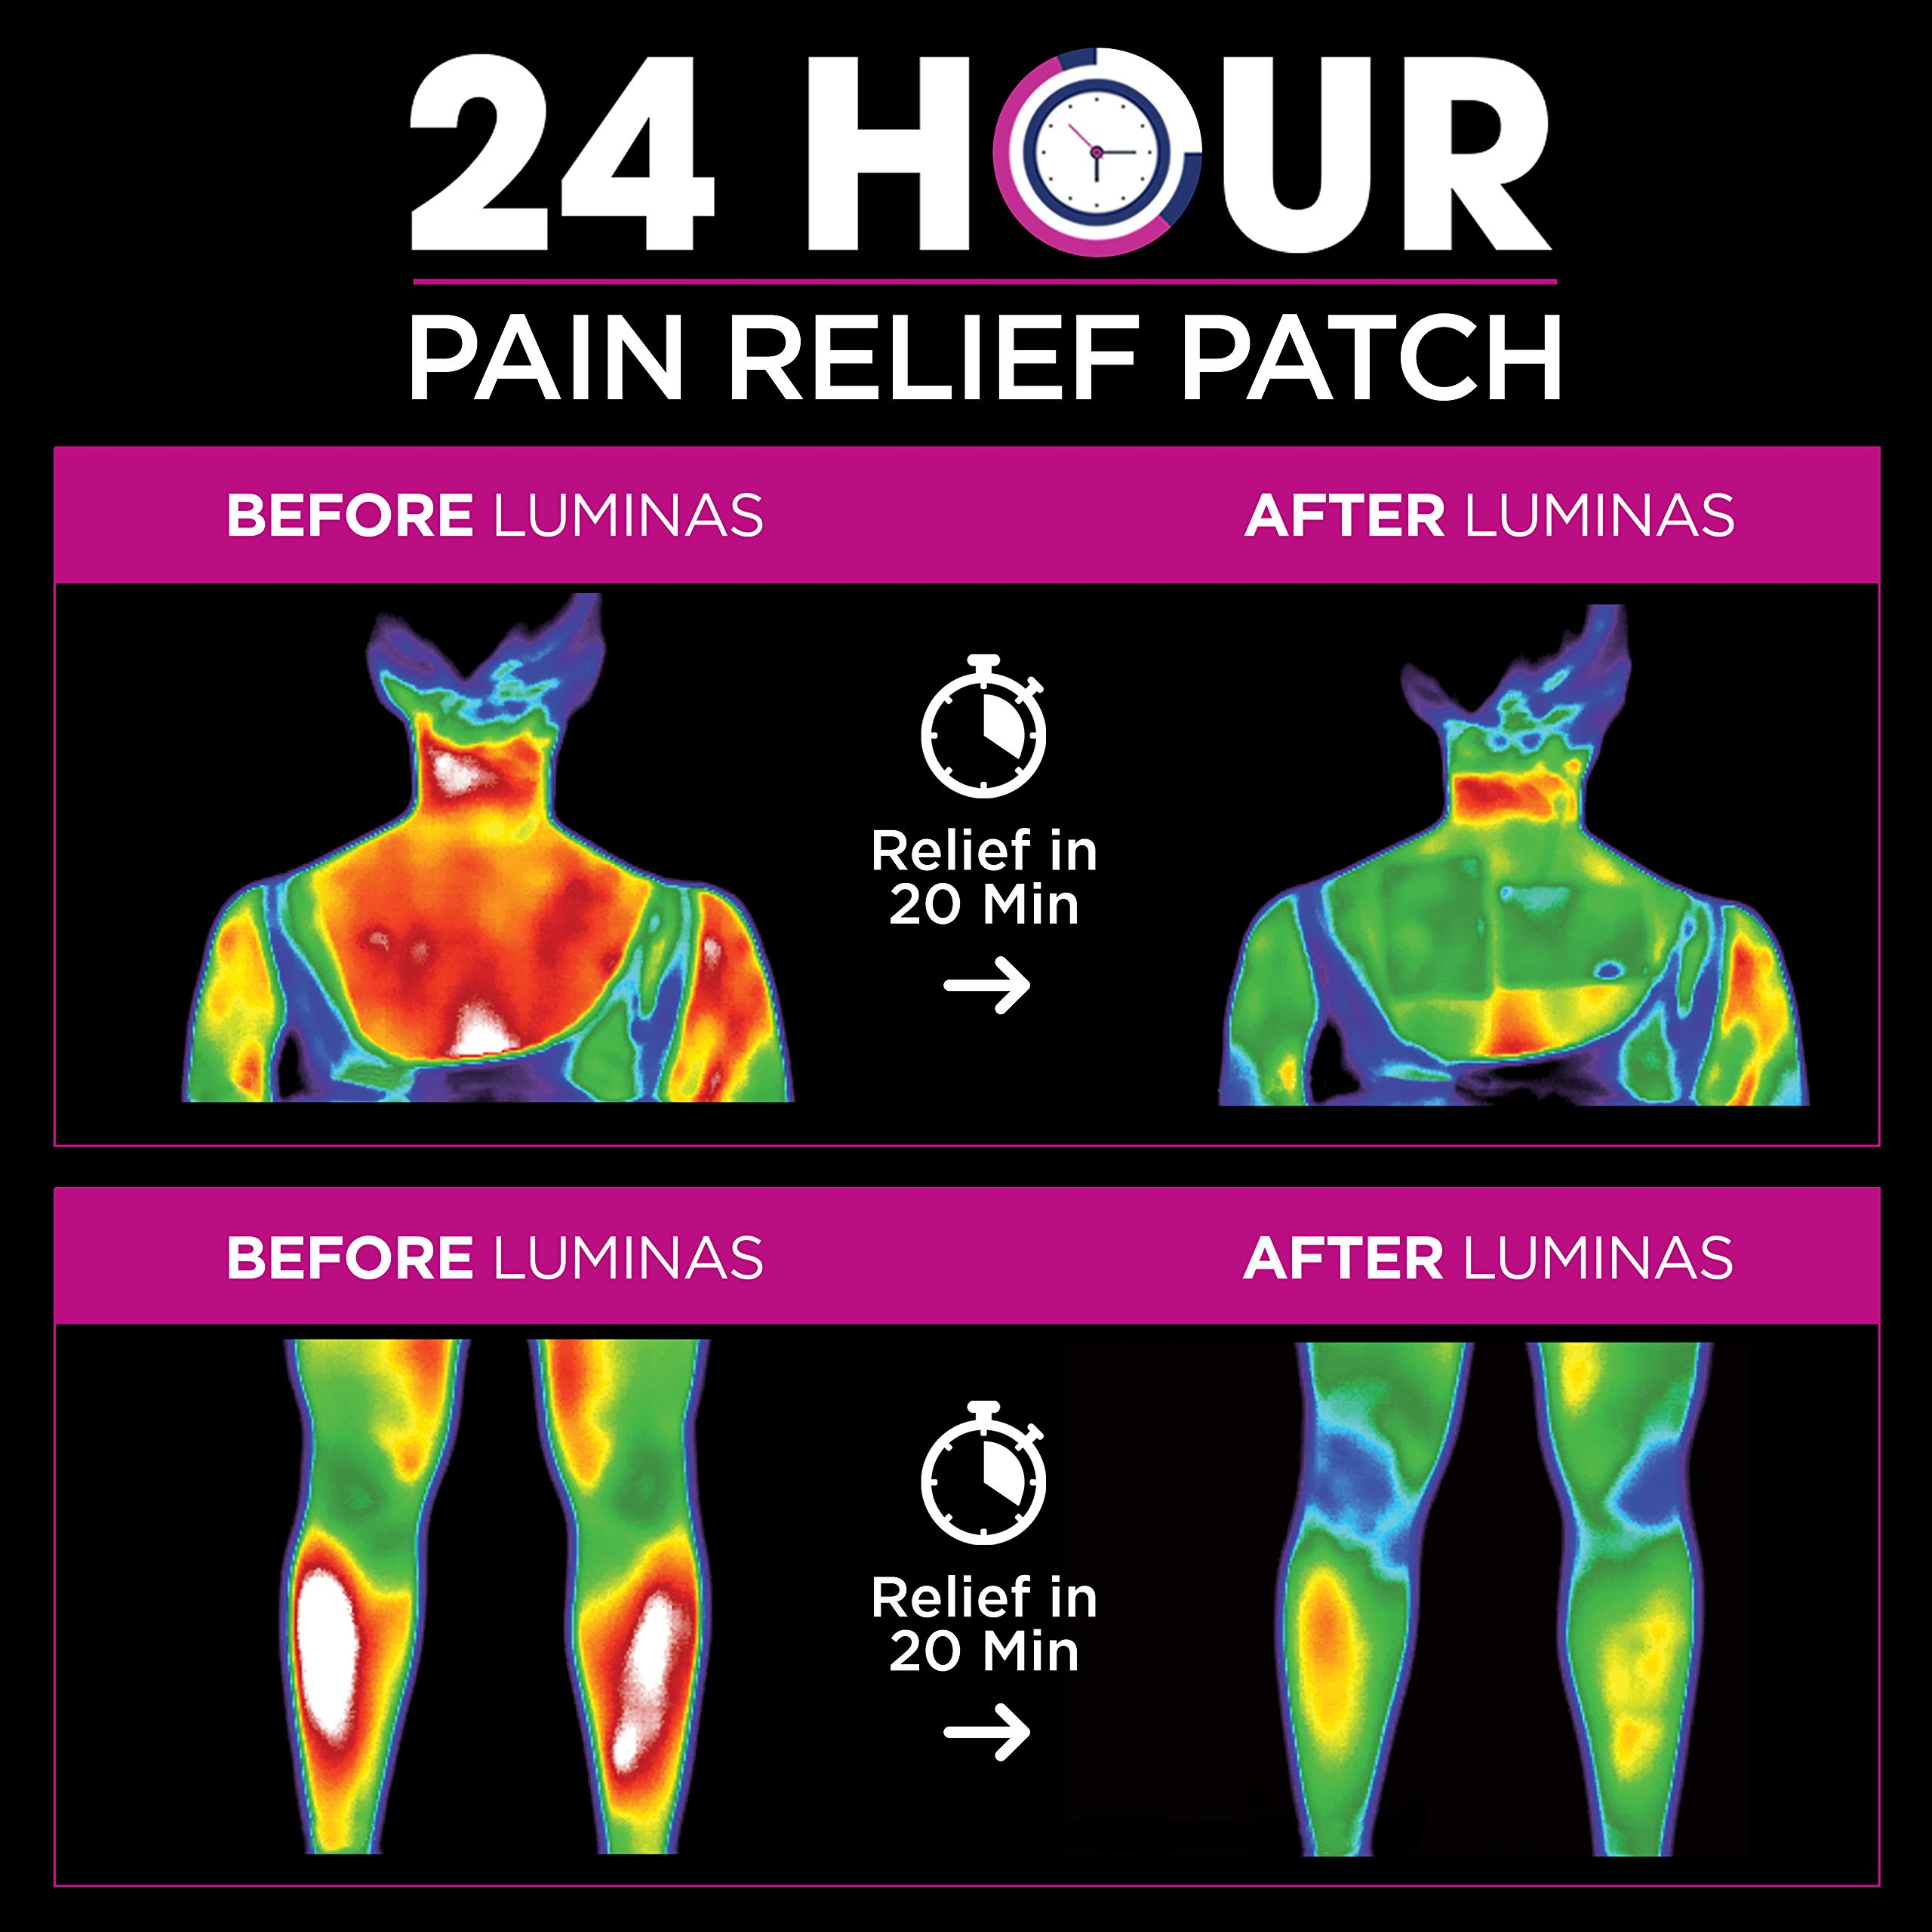 LUMINAS Pain Relief Patches (24 Pack) Up to 24 Hours of Pain Relief for: Joints, Back, Hip, Neck, Headache, Shoulder, Knee, Menstrual Cramps, Muscles, Tendon, Foot, and Other Common Aches and Pains. by LUMINAS